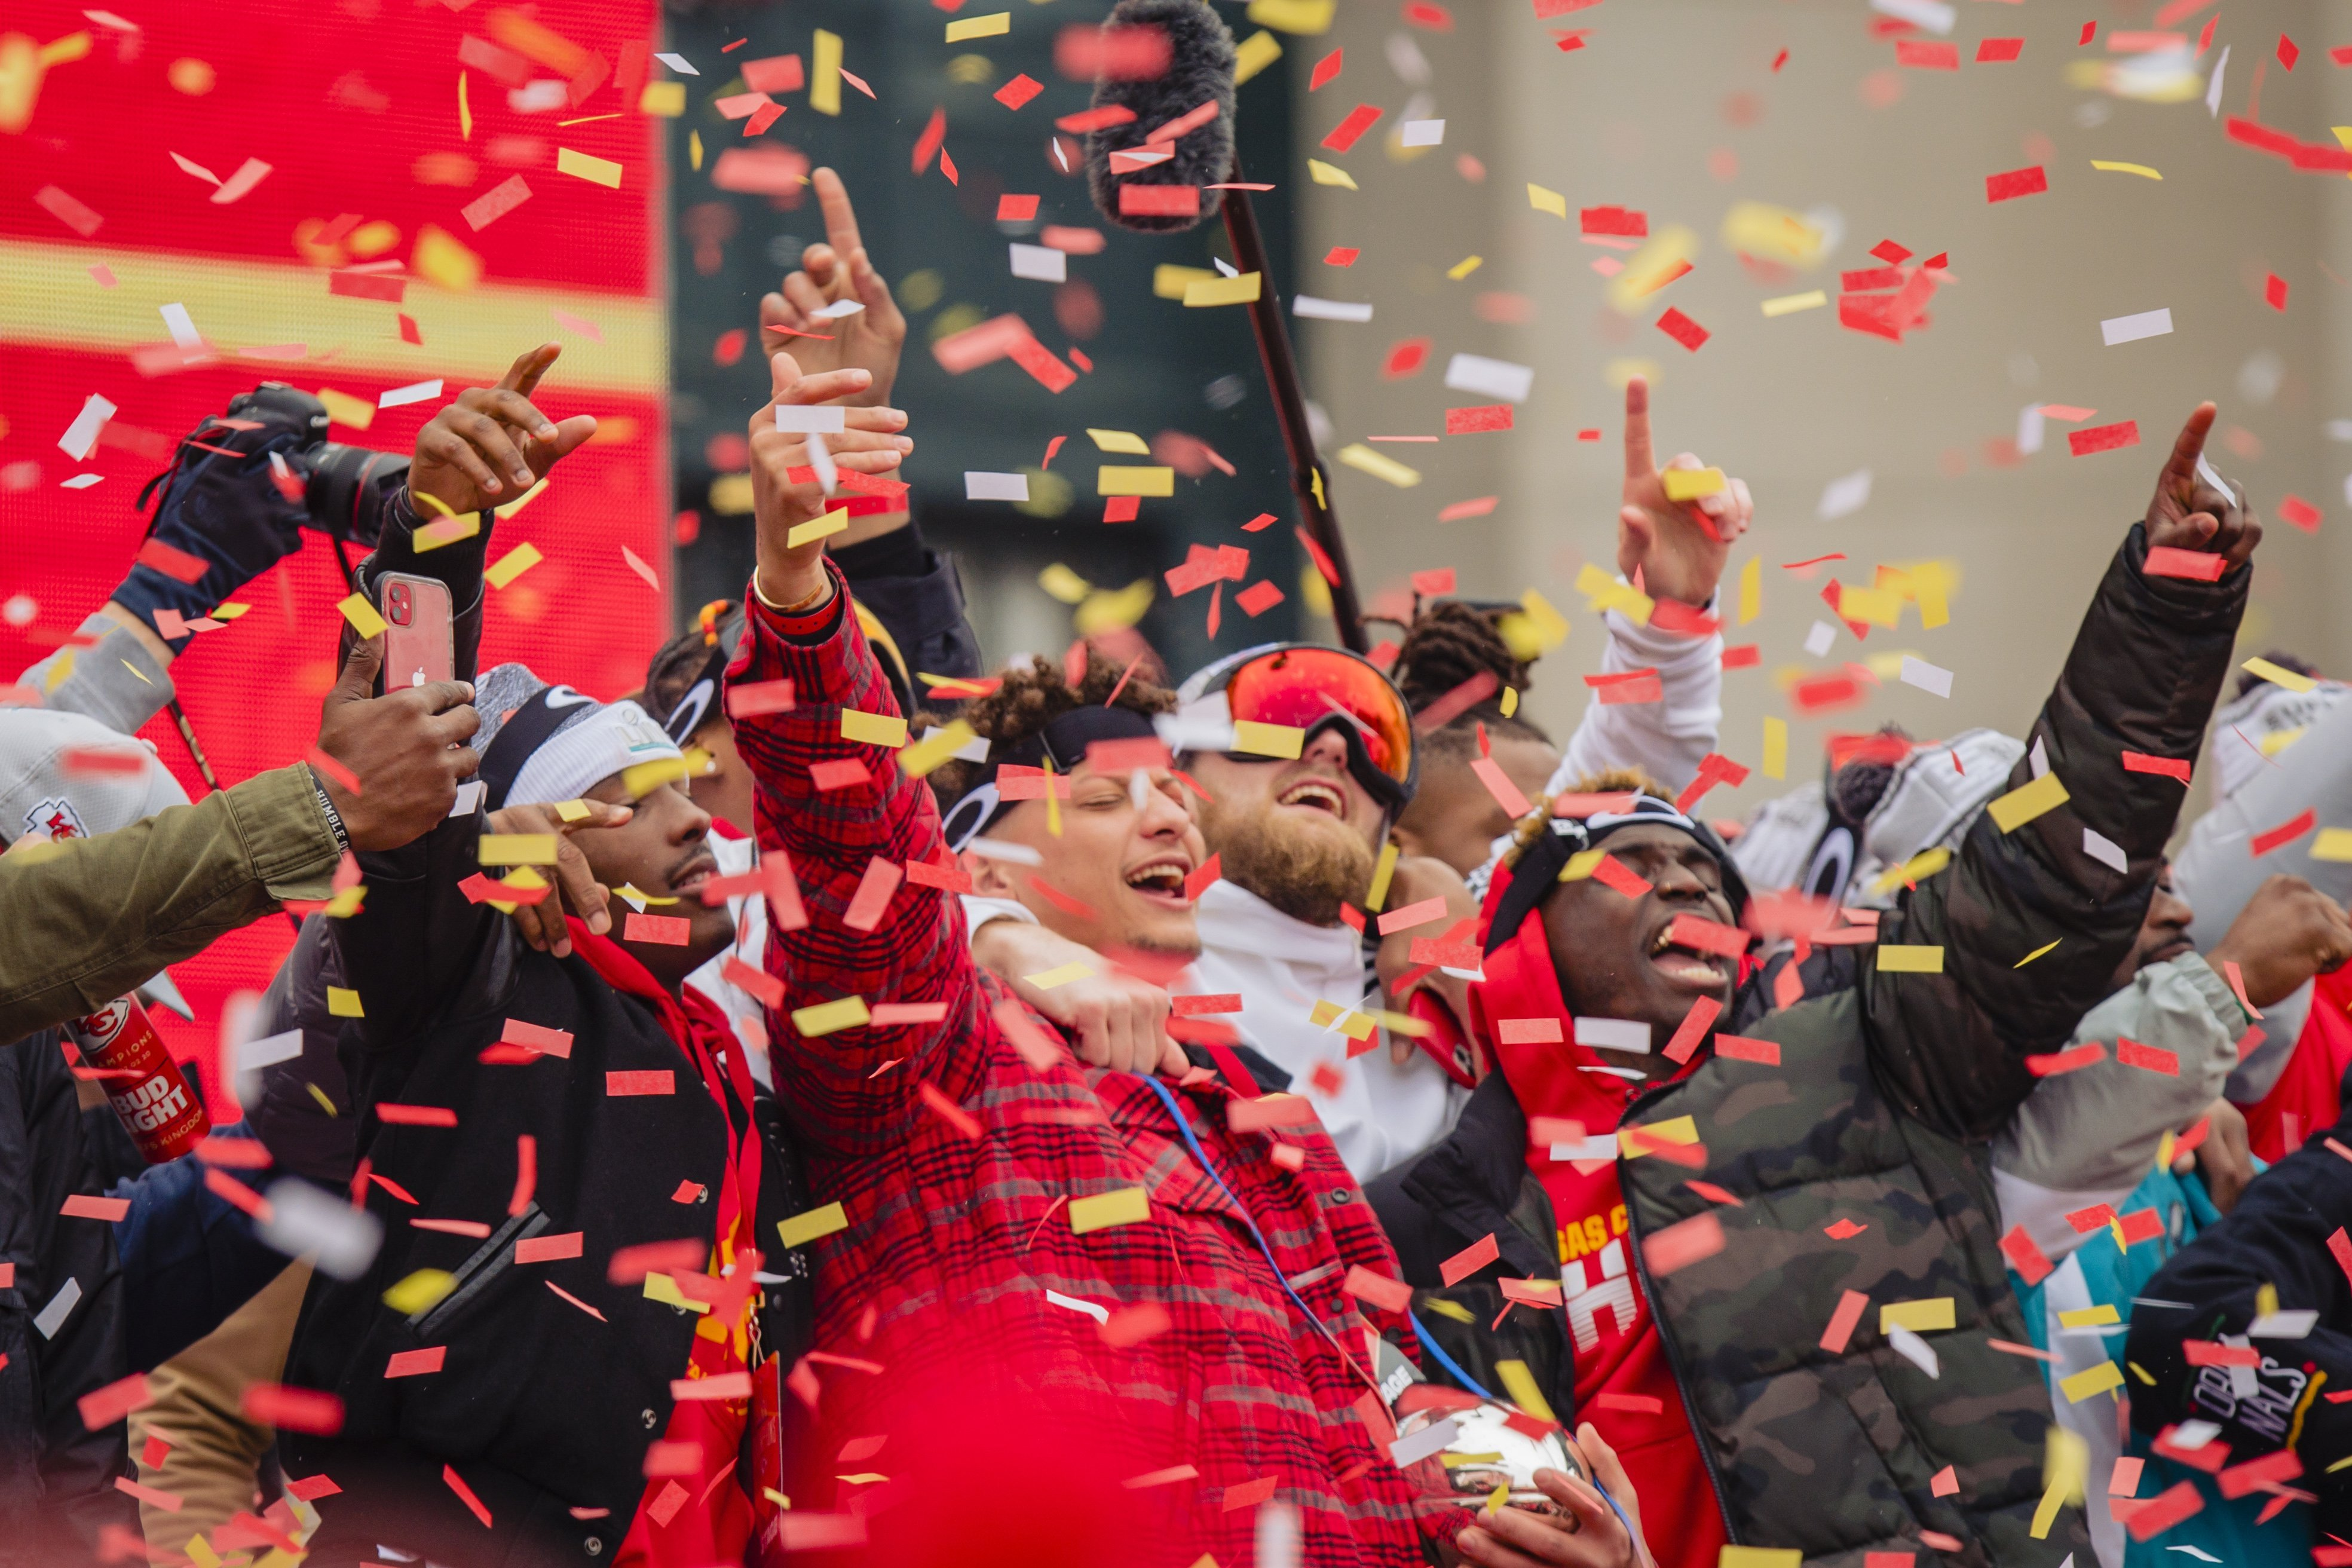 Patrick Mahomes #15 of the Kansas City Chiefs celebrates with the Super Bowl MVP trophy during the Kansas City Chiefs Victory Parade on February 5, 2020 | Photo: Getty Images